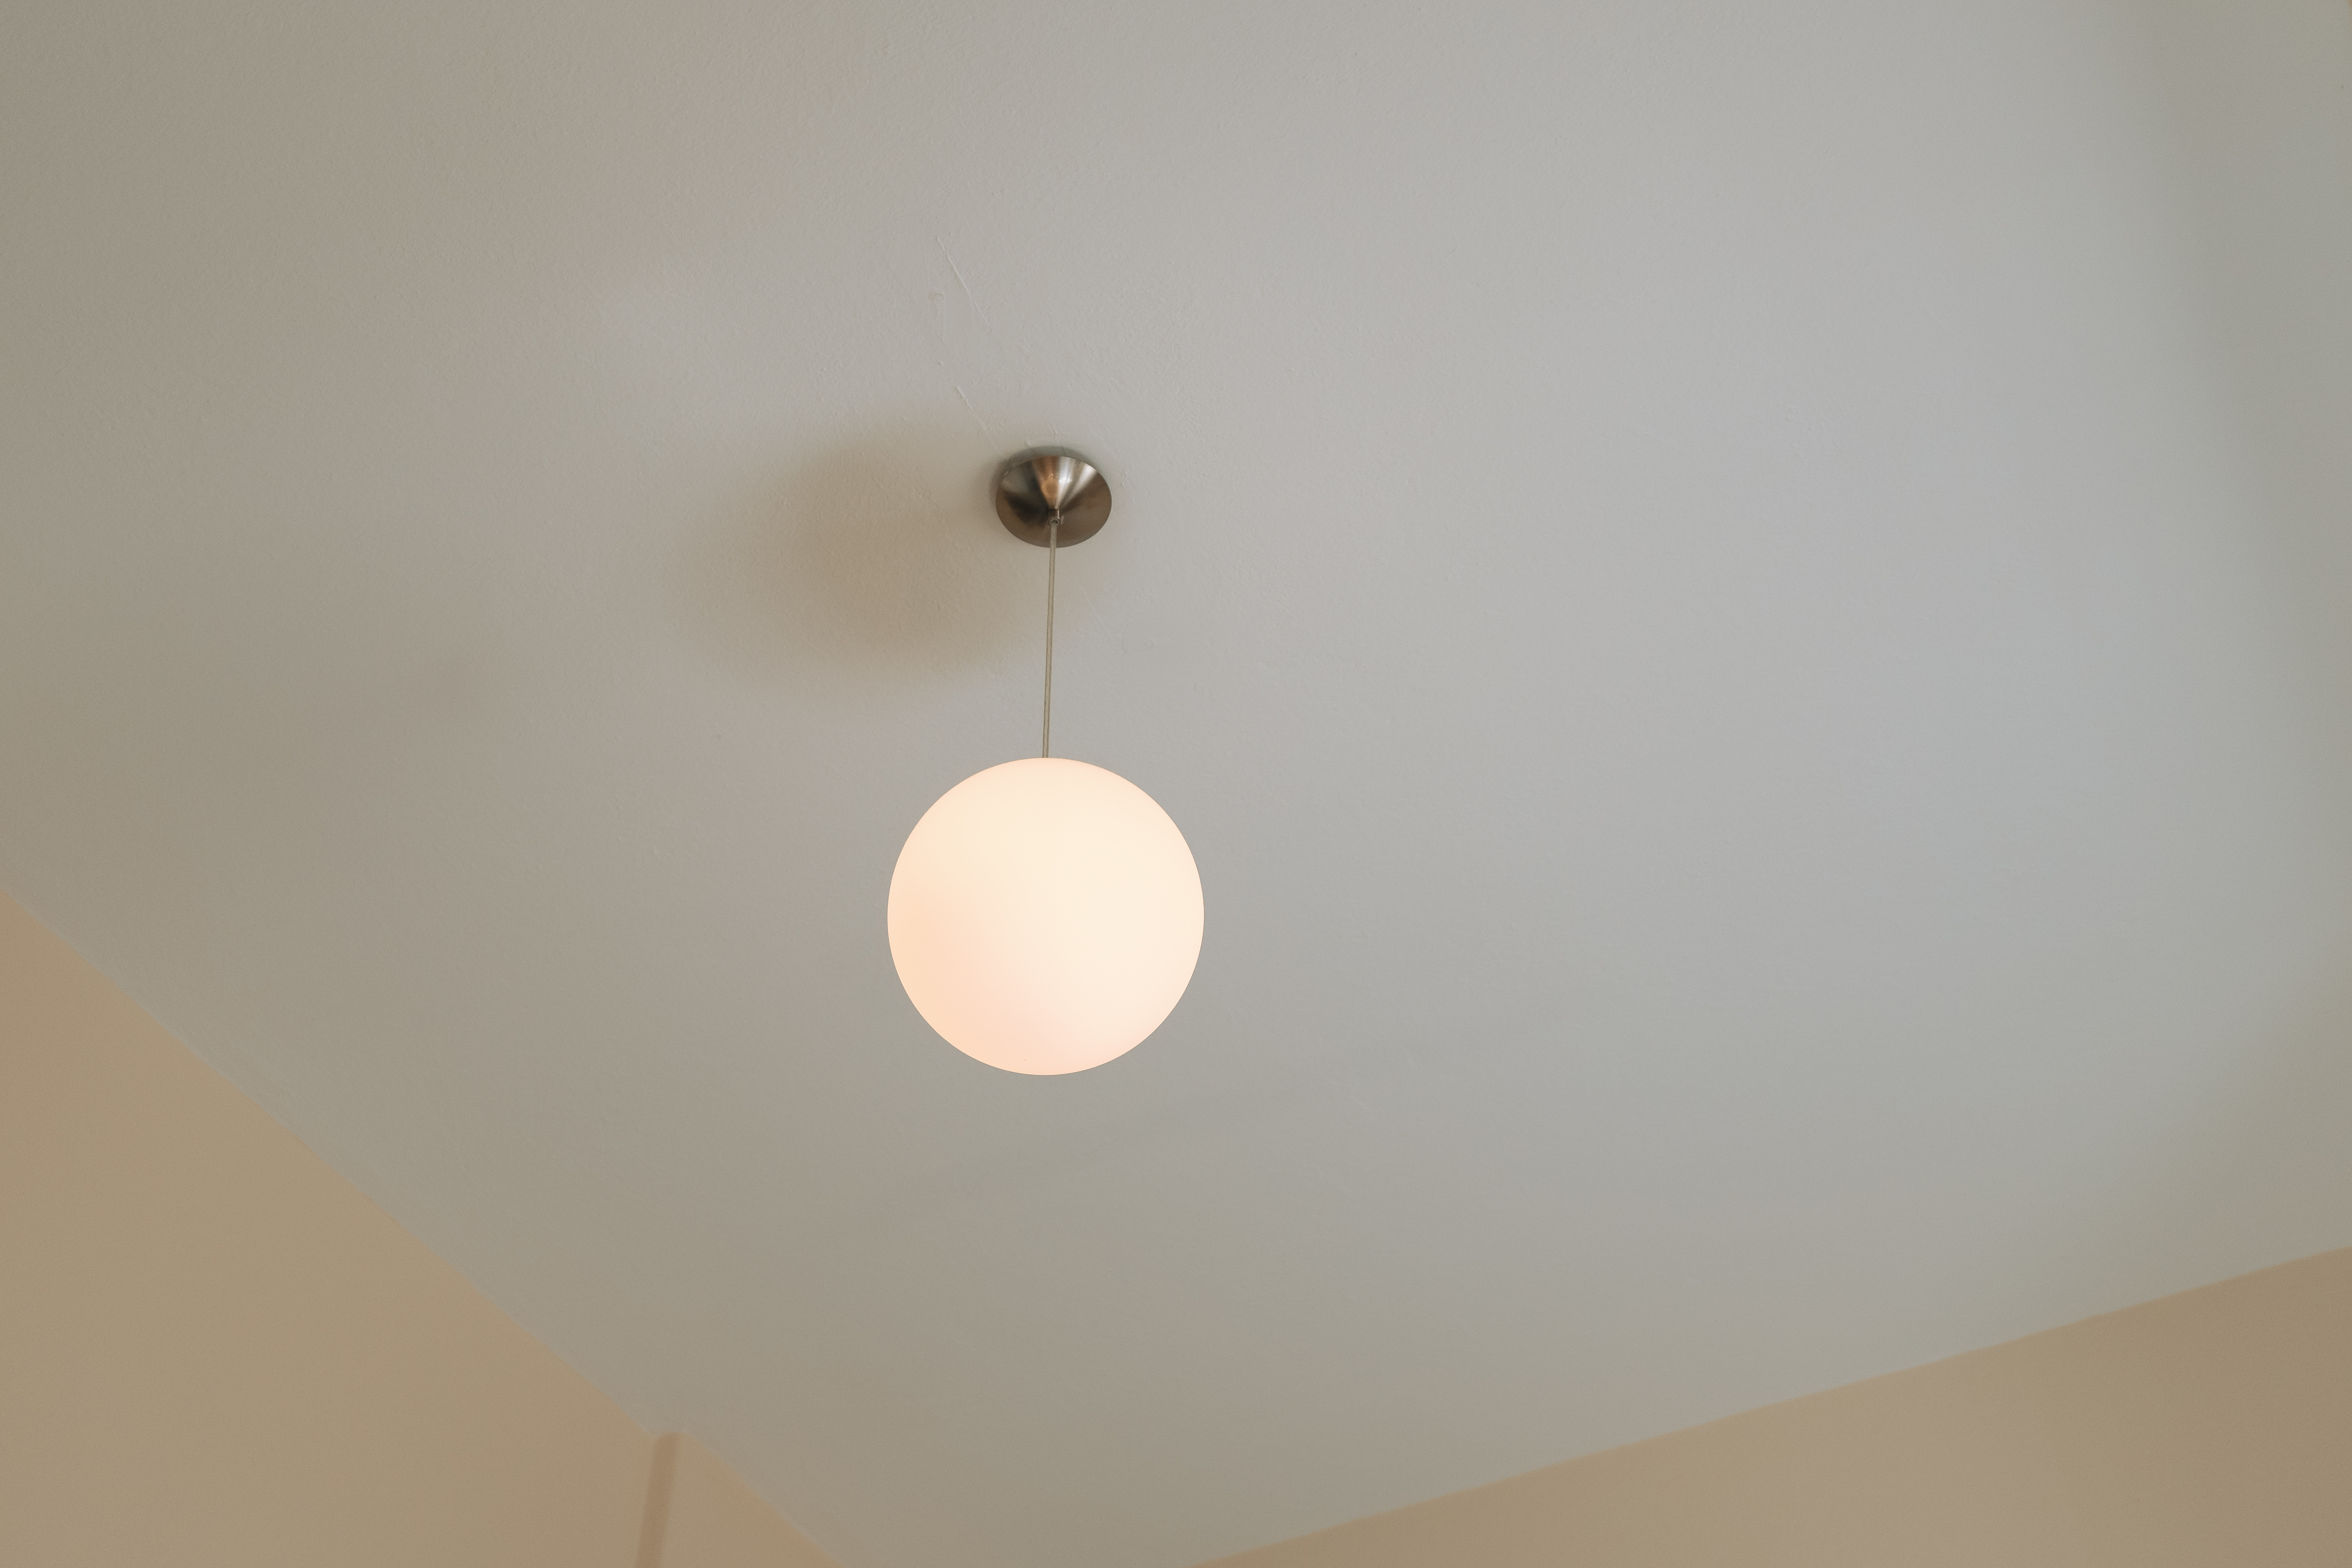 https homeguides sfgate com can use cover hole ceiling old light fixture 104016 html